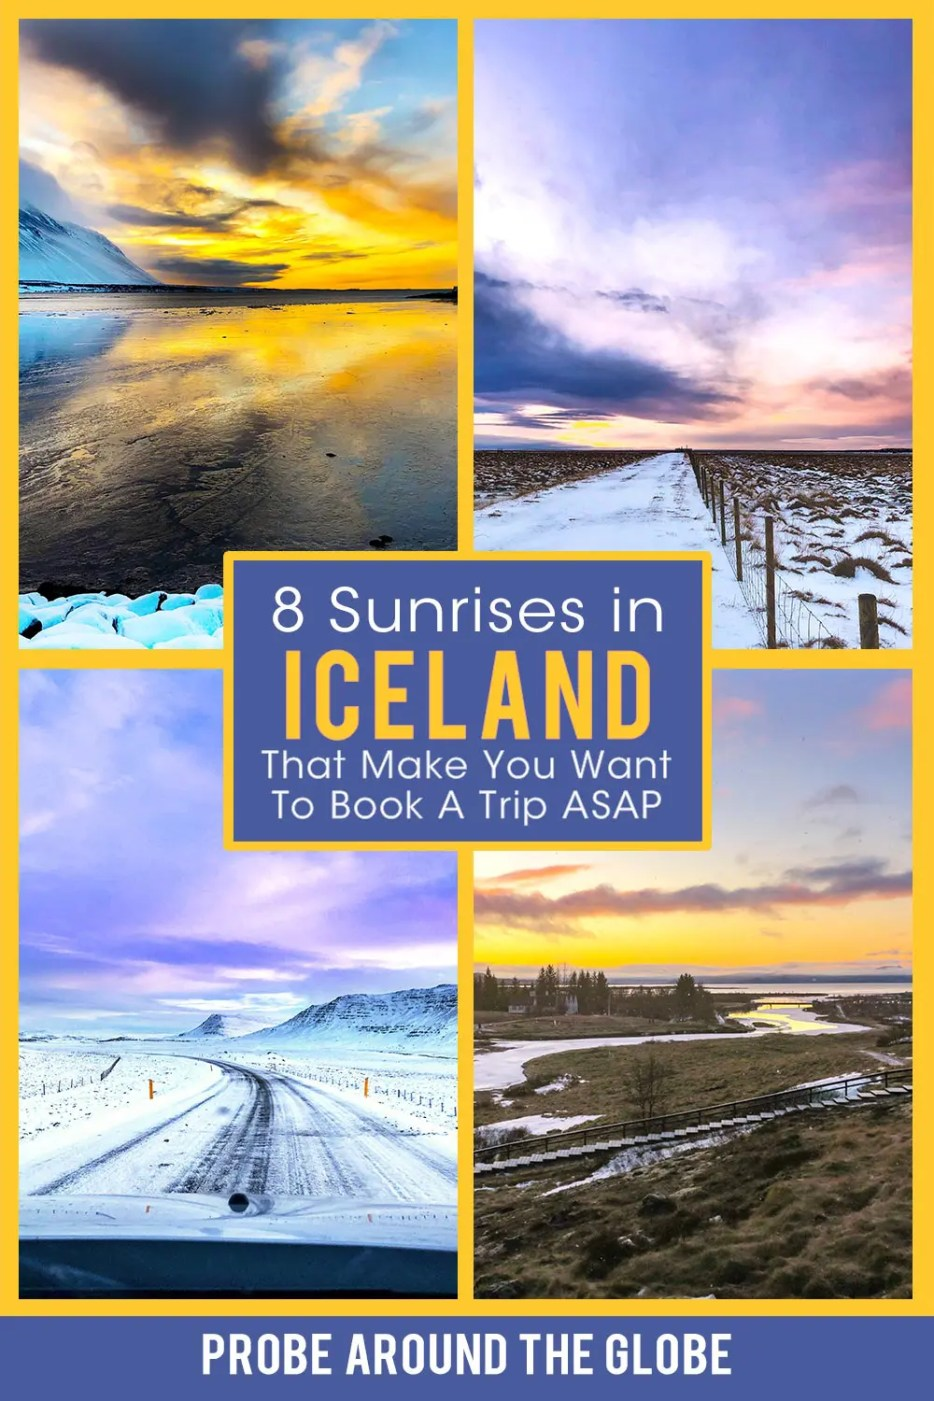 4 images of sunrises in Iceland. Yellow sunrise above a frozen lake. Pink sunrise over a snow-covered field. Purple sunrise over snow-covered road and mountains and 4th image of frozen river delta with golden sunrise. Text overlay saying: 8 sunrises in Iceland that will make you want to book a trip ASAP. Probe around the Globe